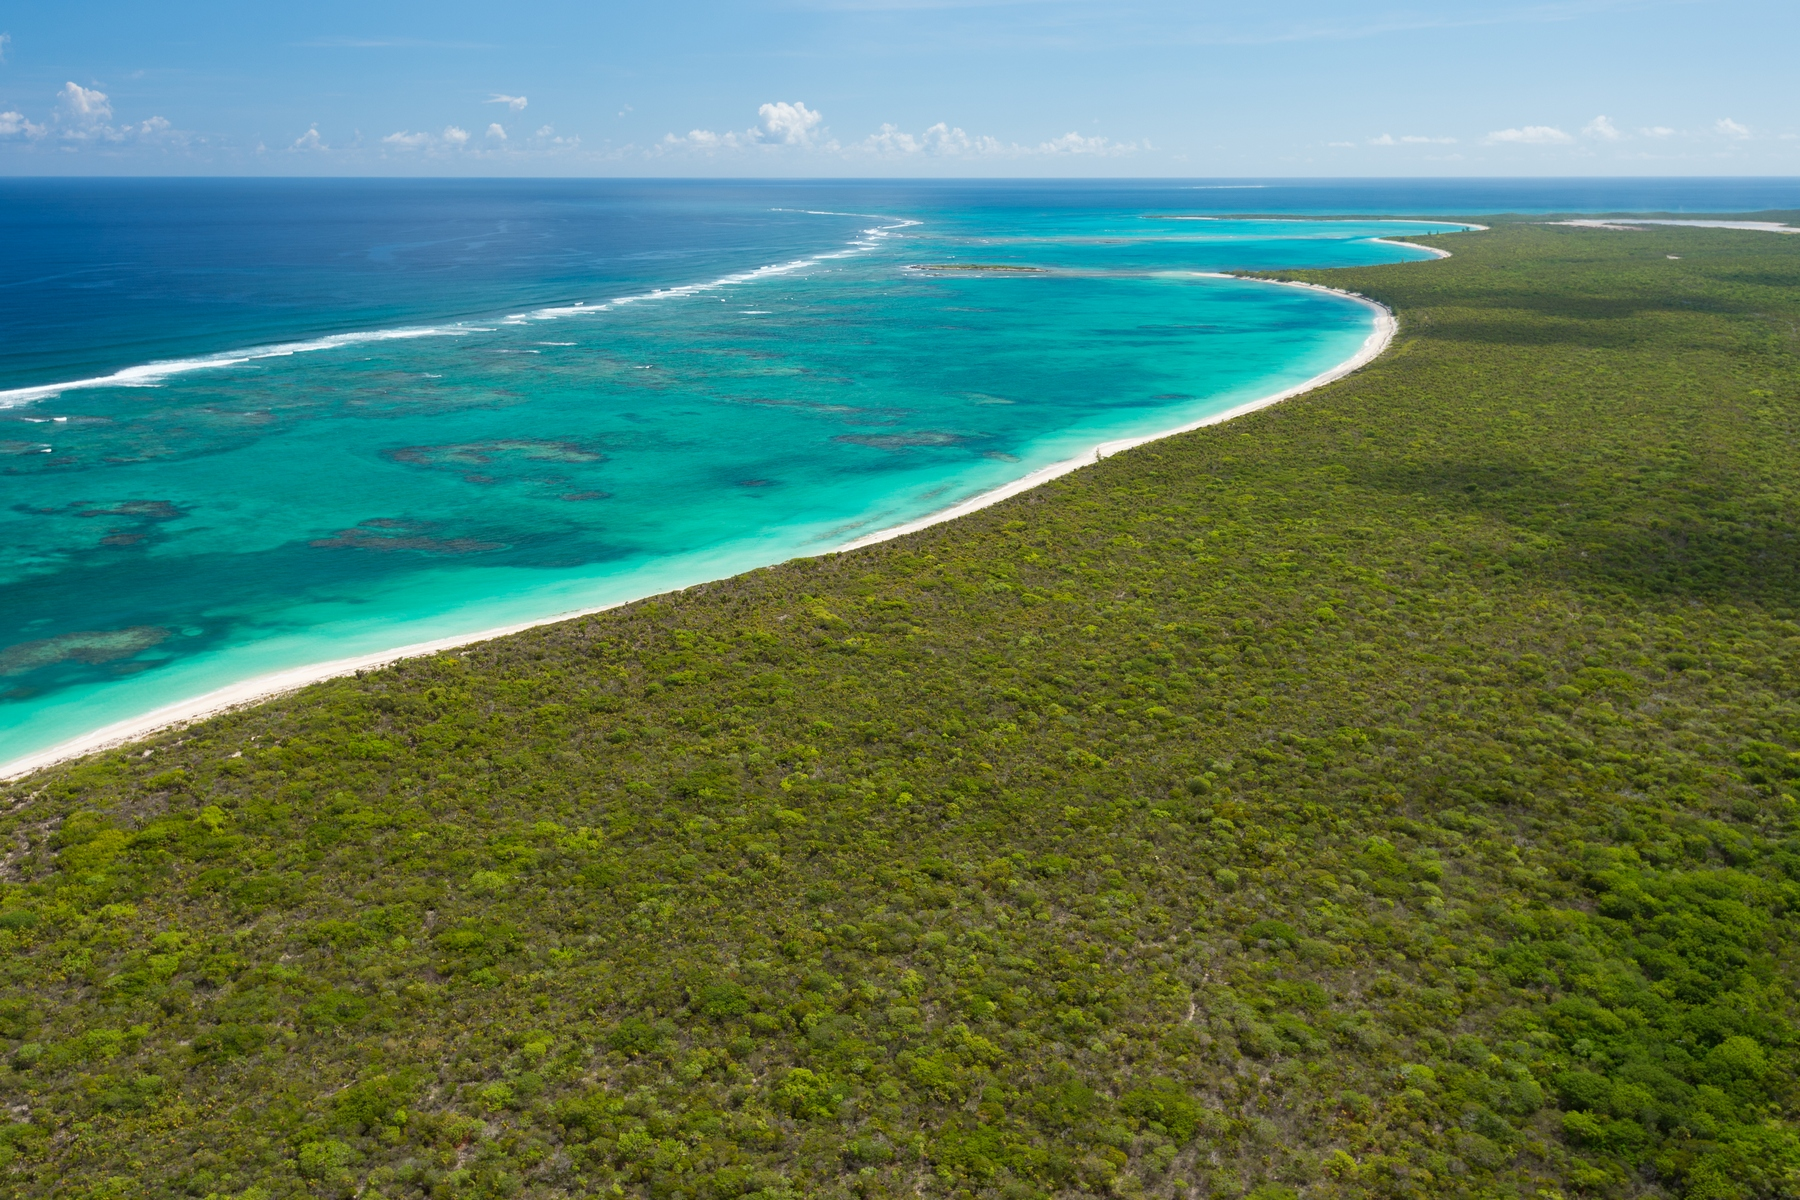 Additional photo for property listing at EAST CAICOS BLOCK 30200 1A WEST BEACHFRONT INVESTMENT OPPORTUNITY East Caicos, East Caicos TCI BWI Теркс И Кайкос